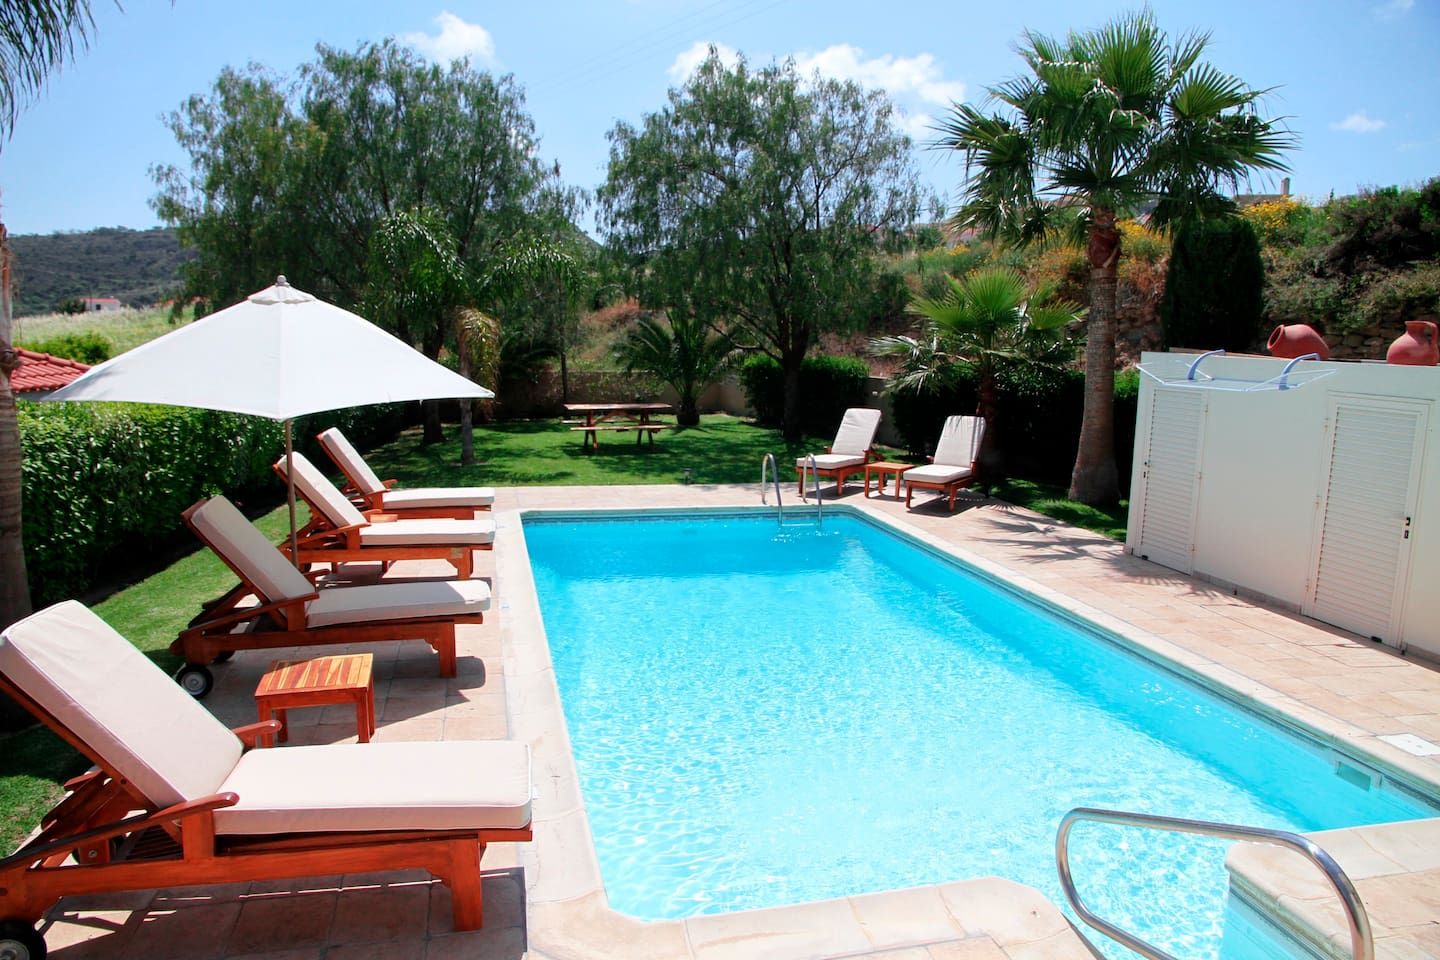 Relax in the pool and on the luxurious sunbeds